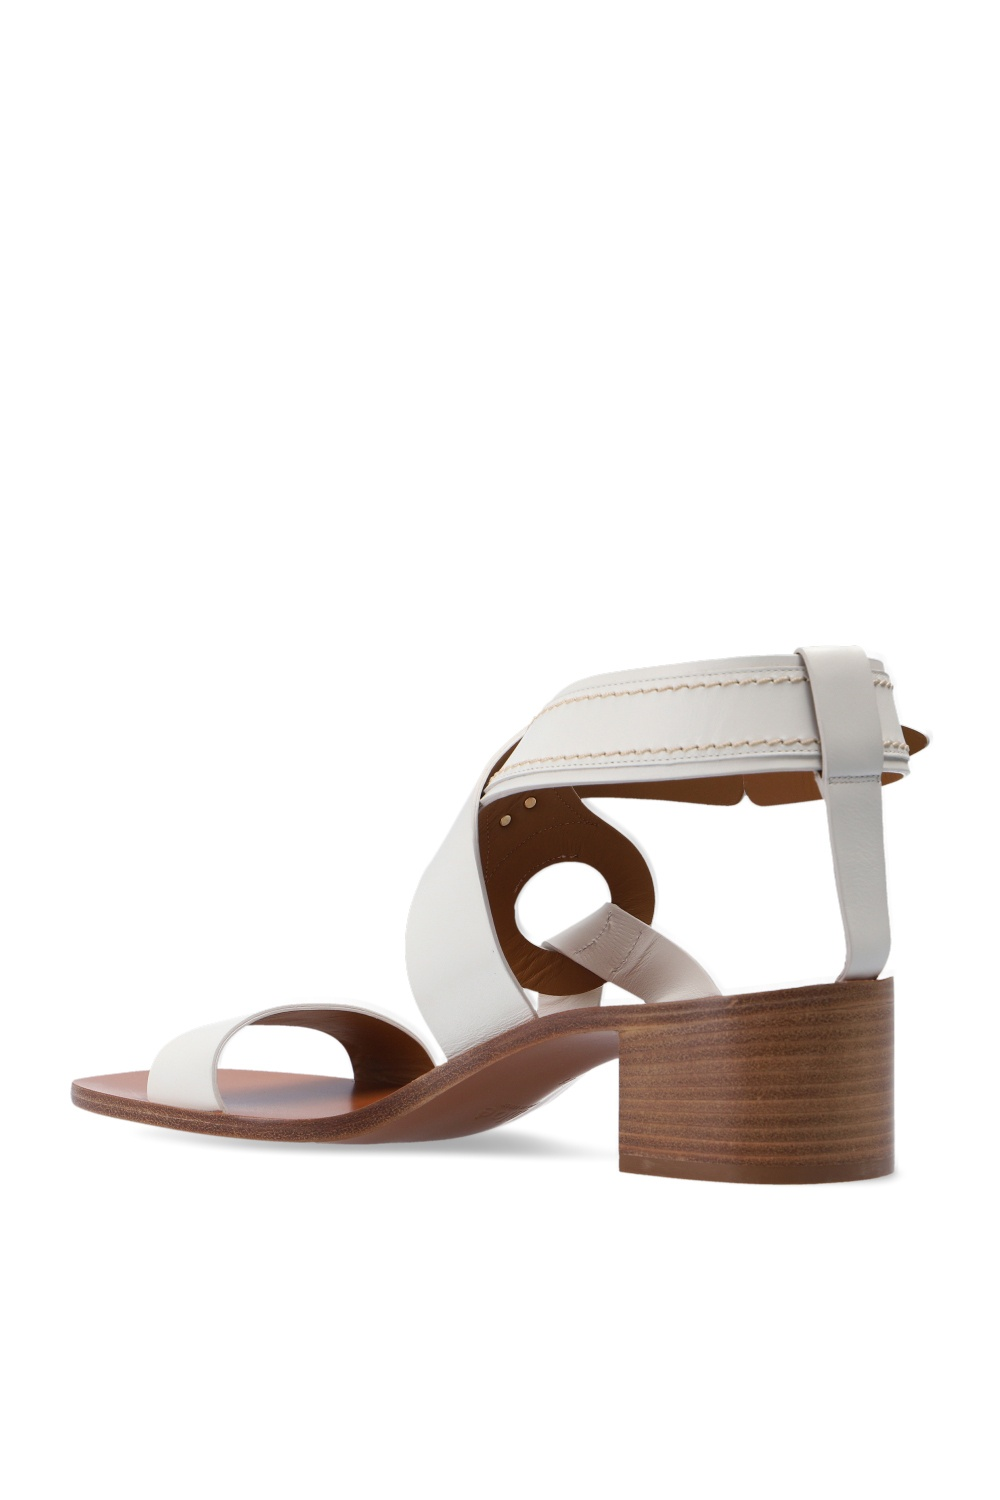 Chloé 'Demi' heeled sandals